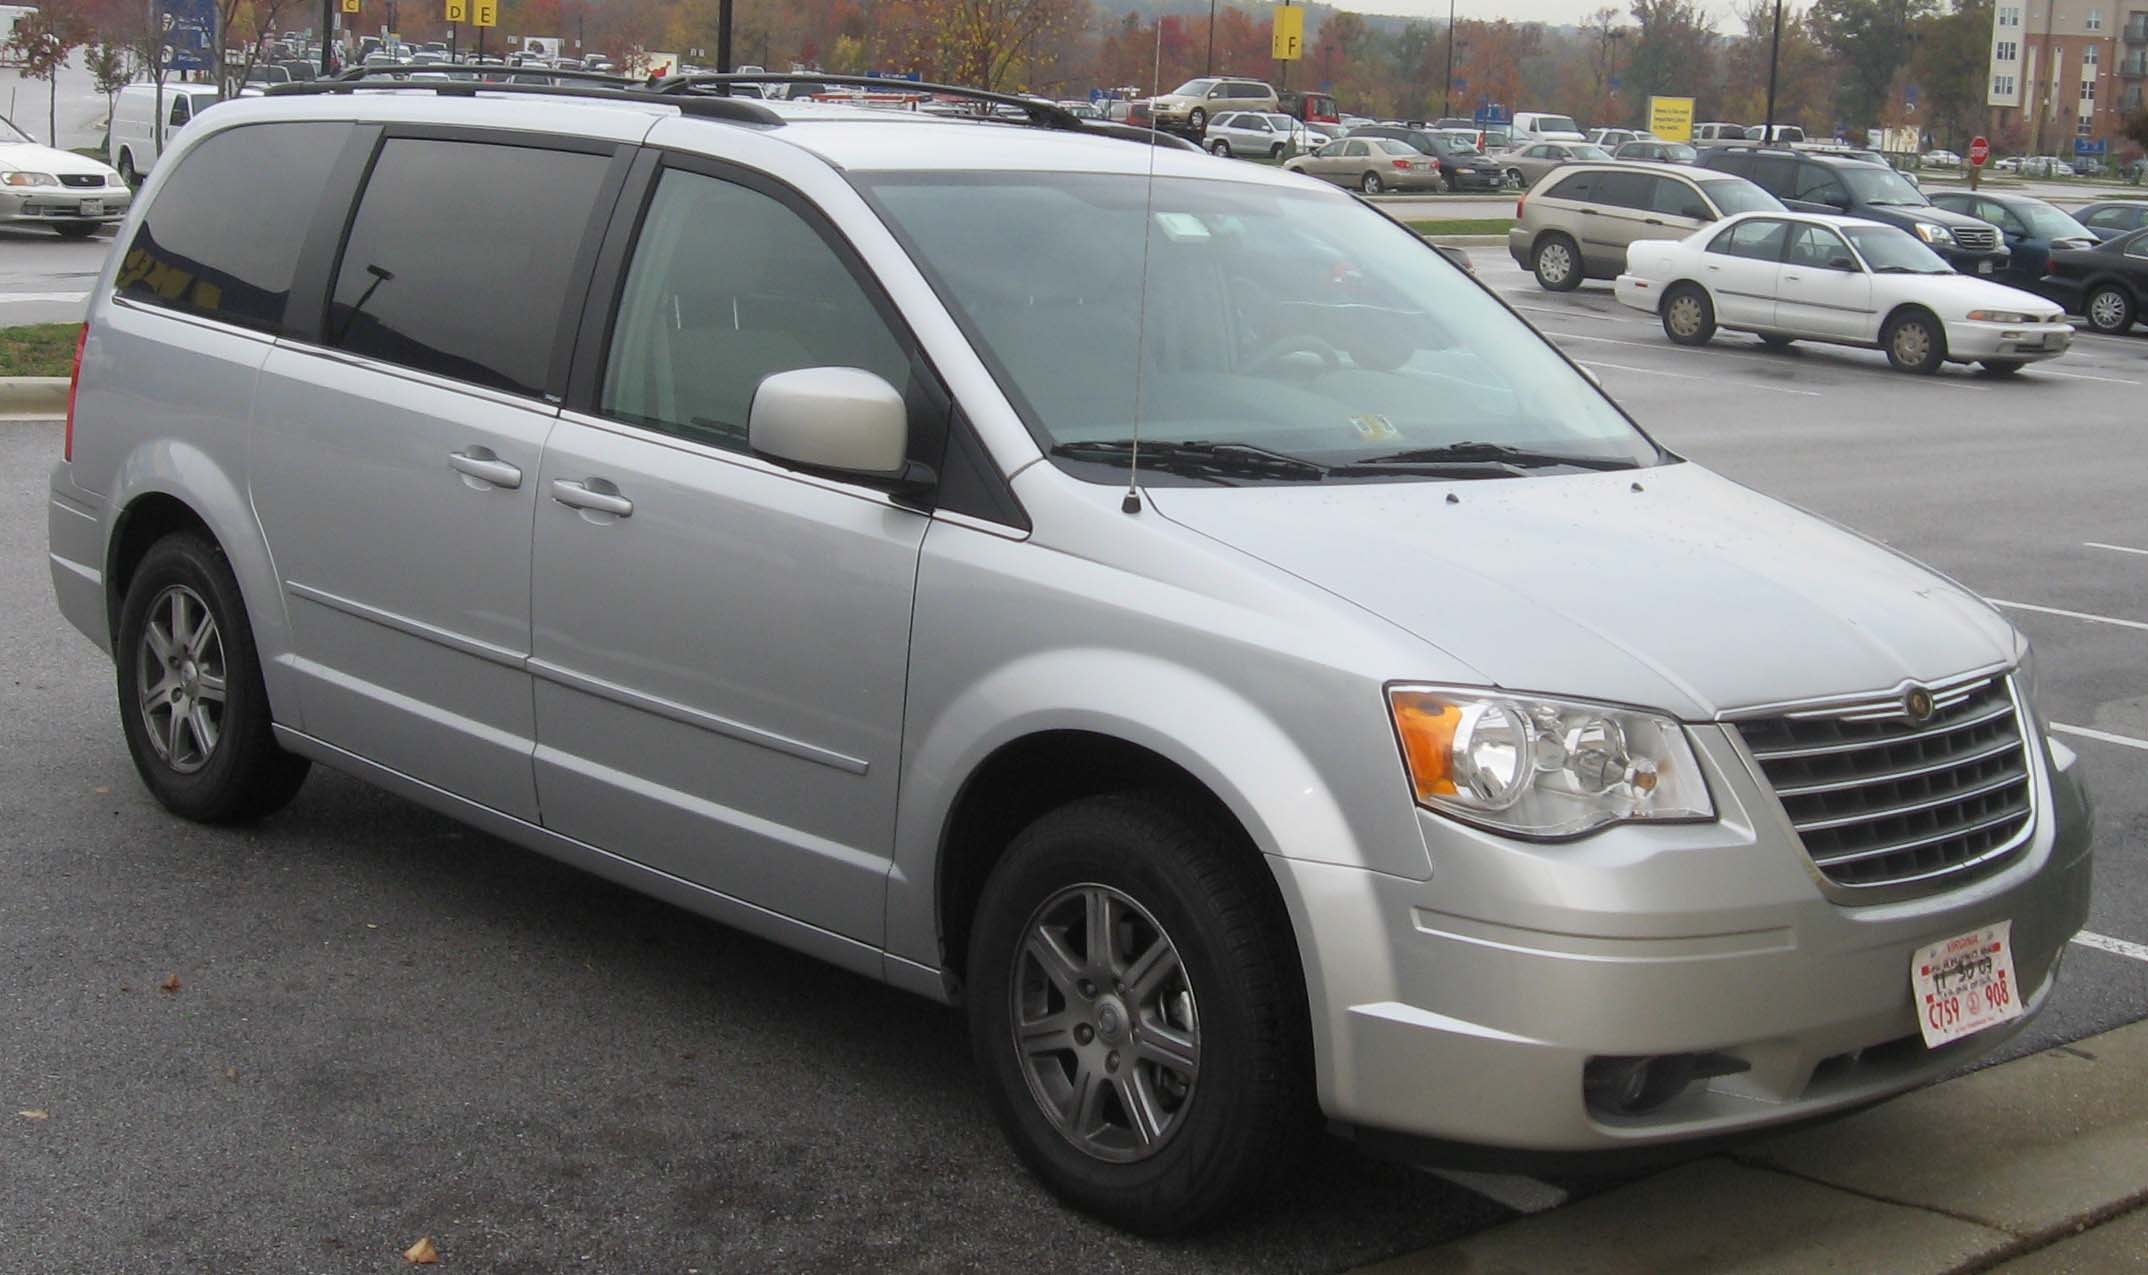 bestand 2008 chrysler town country wikipedia. Black Bedroom Furniture Sets. Home Design Ideas